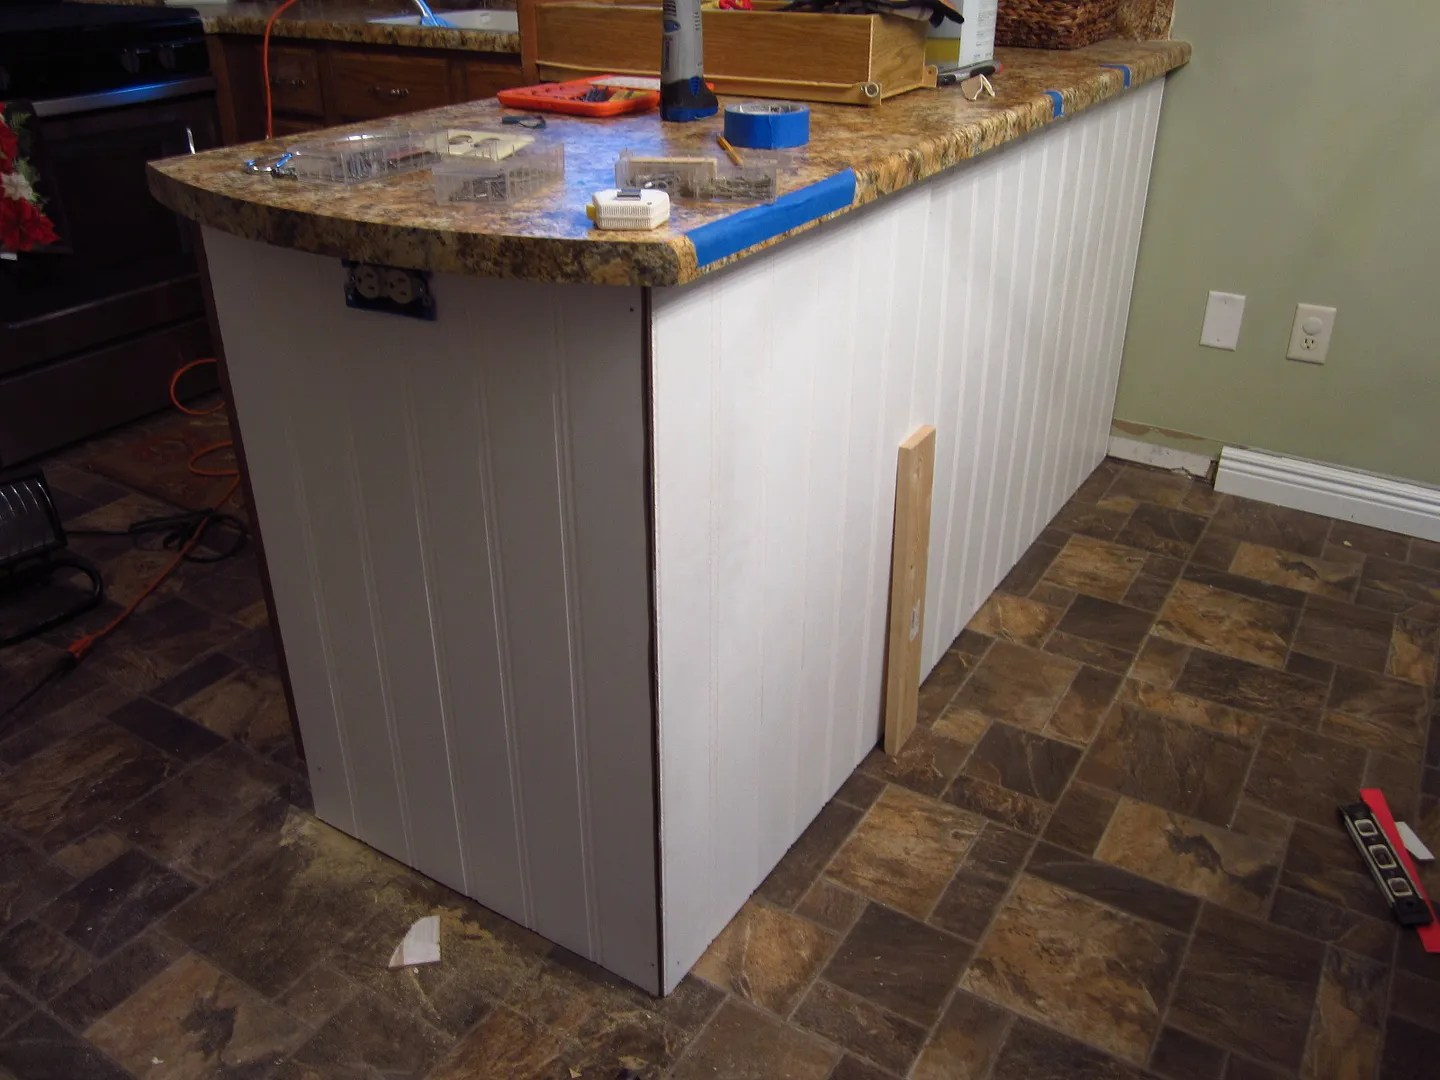 kitchen cabinet outlet illinois with Add Character To A Kitchen Islandpeninsula Diy on Tribune highlights likewise Show Me Kitchen Designs besides Home Depot Burbank in addition Wine Cooler Cabi s Furniture additionally Aster Cucine B 713.